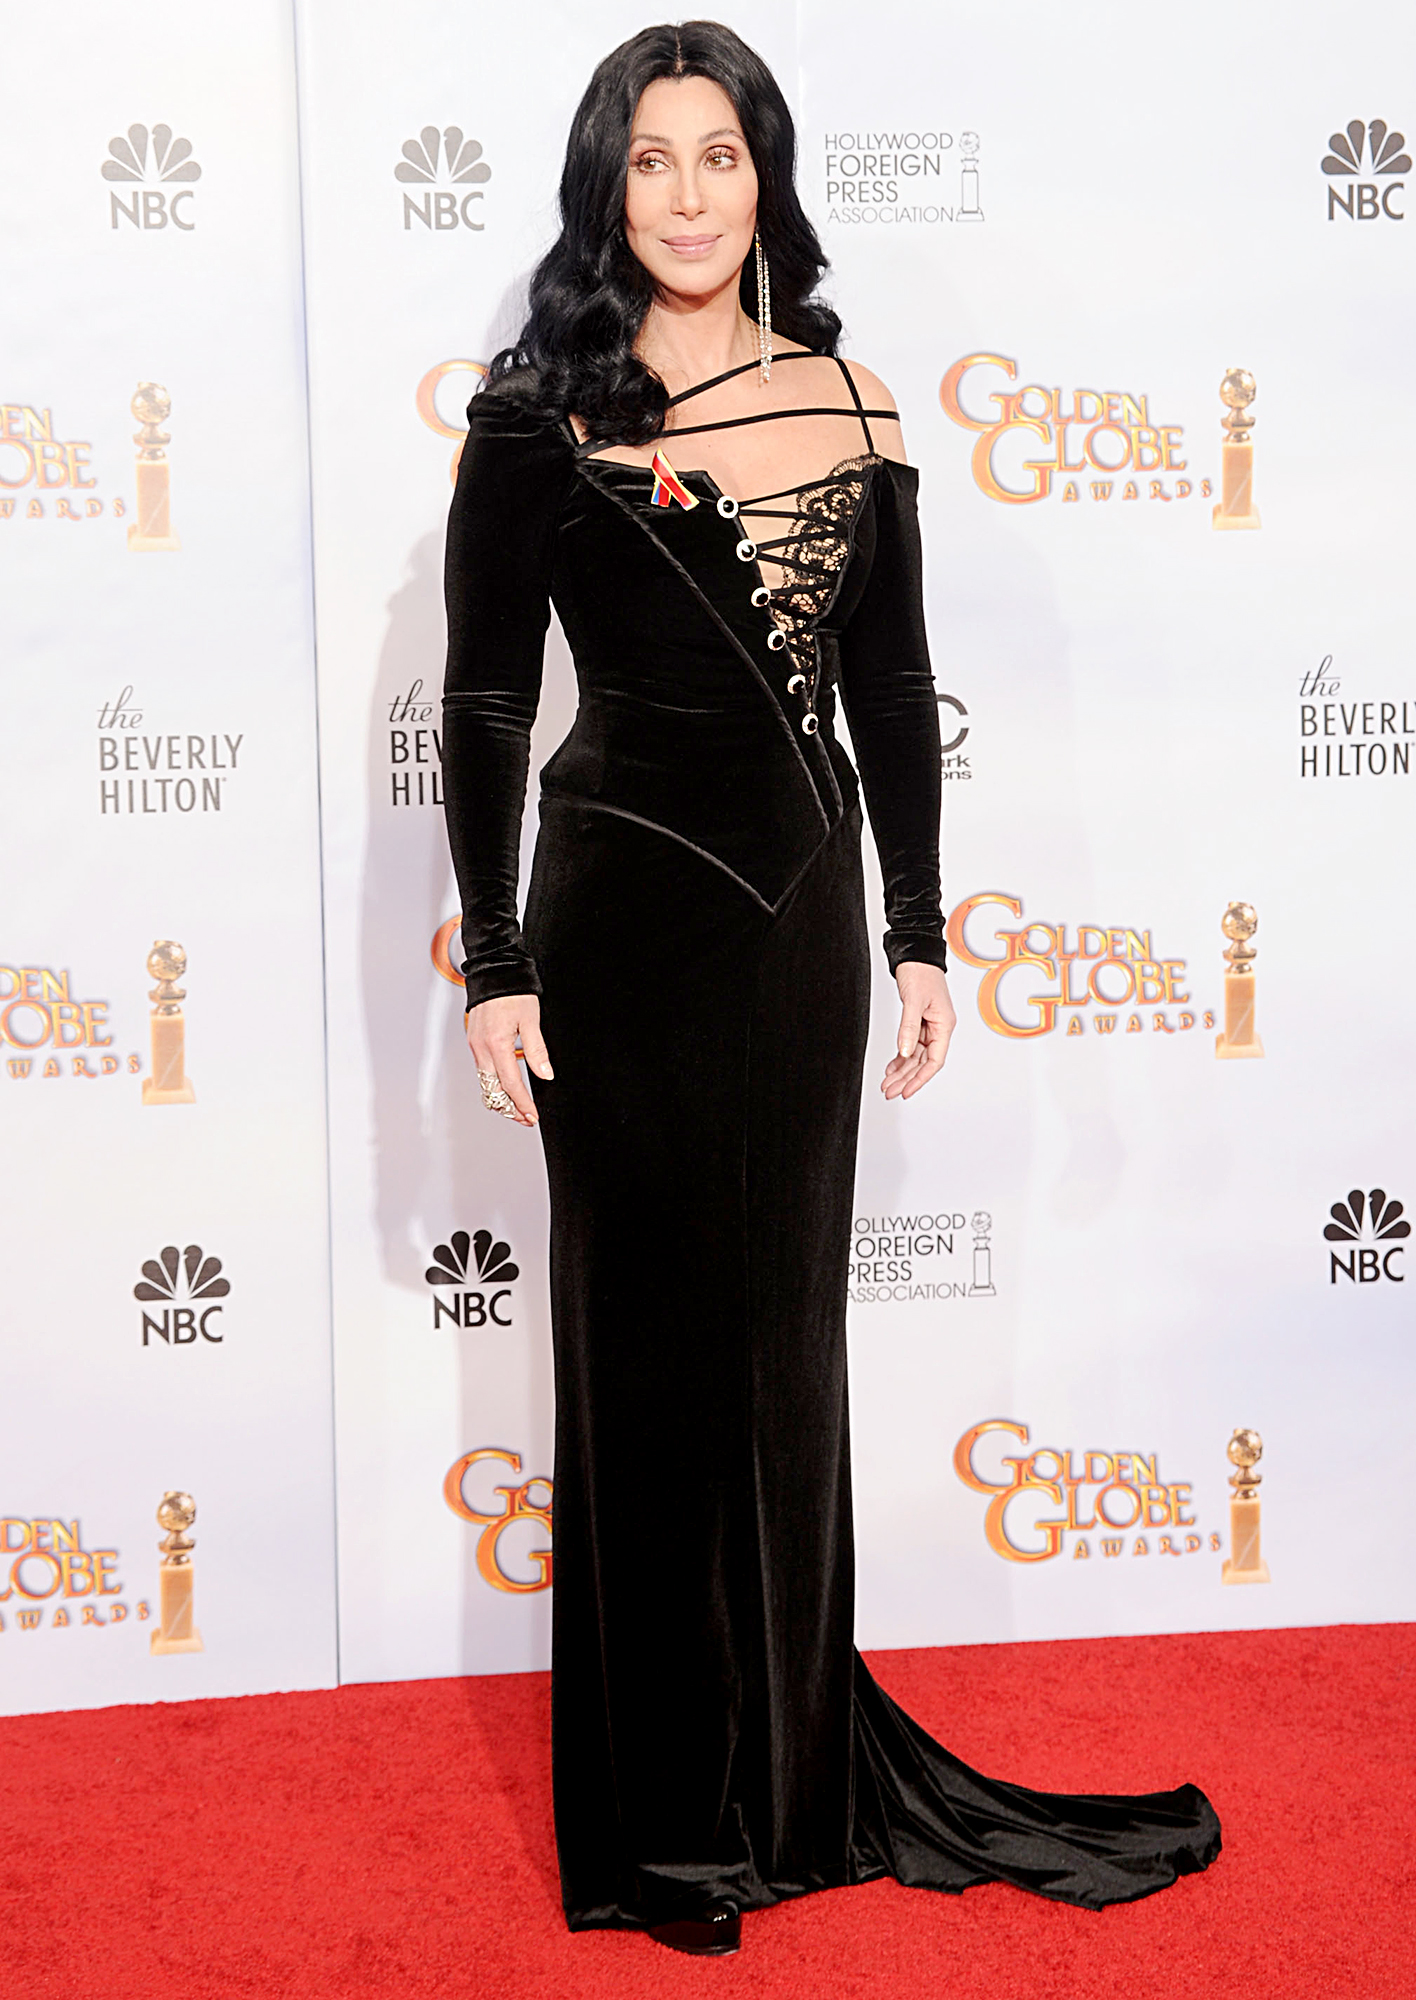 2010-Cher - At the 67th annual Golden Globes, Cher wore a black dress with corset-lacing asymmetrically up one side of the bodice.